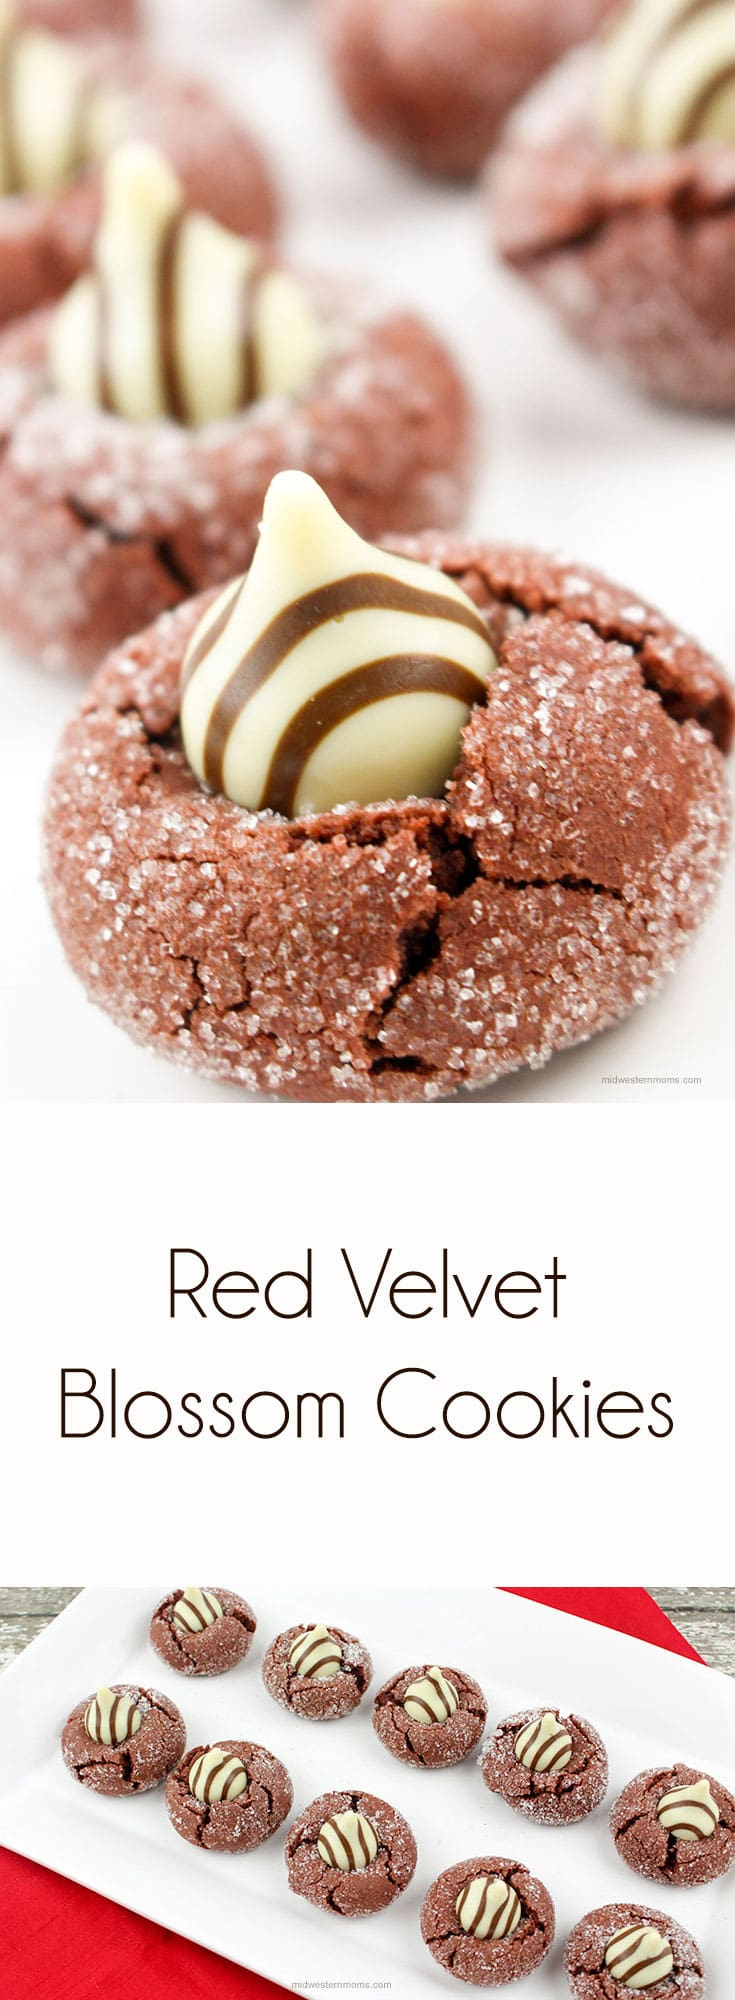 Red Velvet Blossom Cookie Recipe